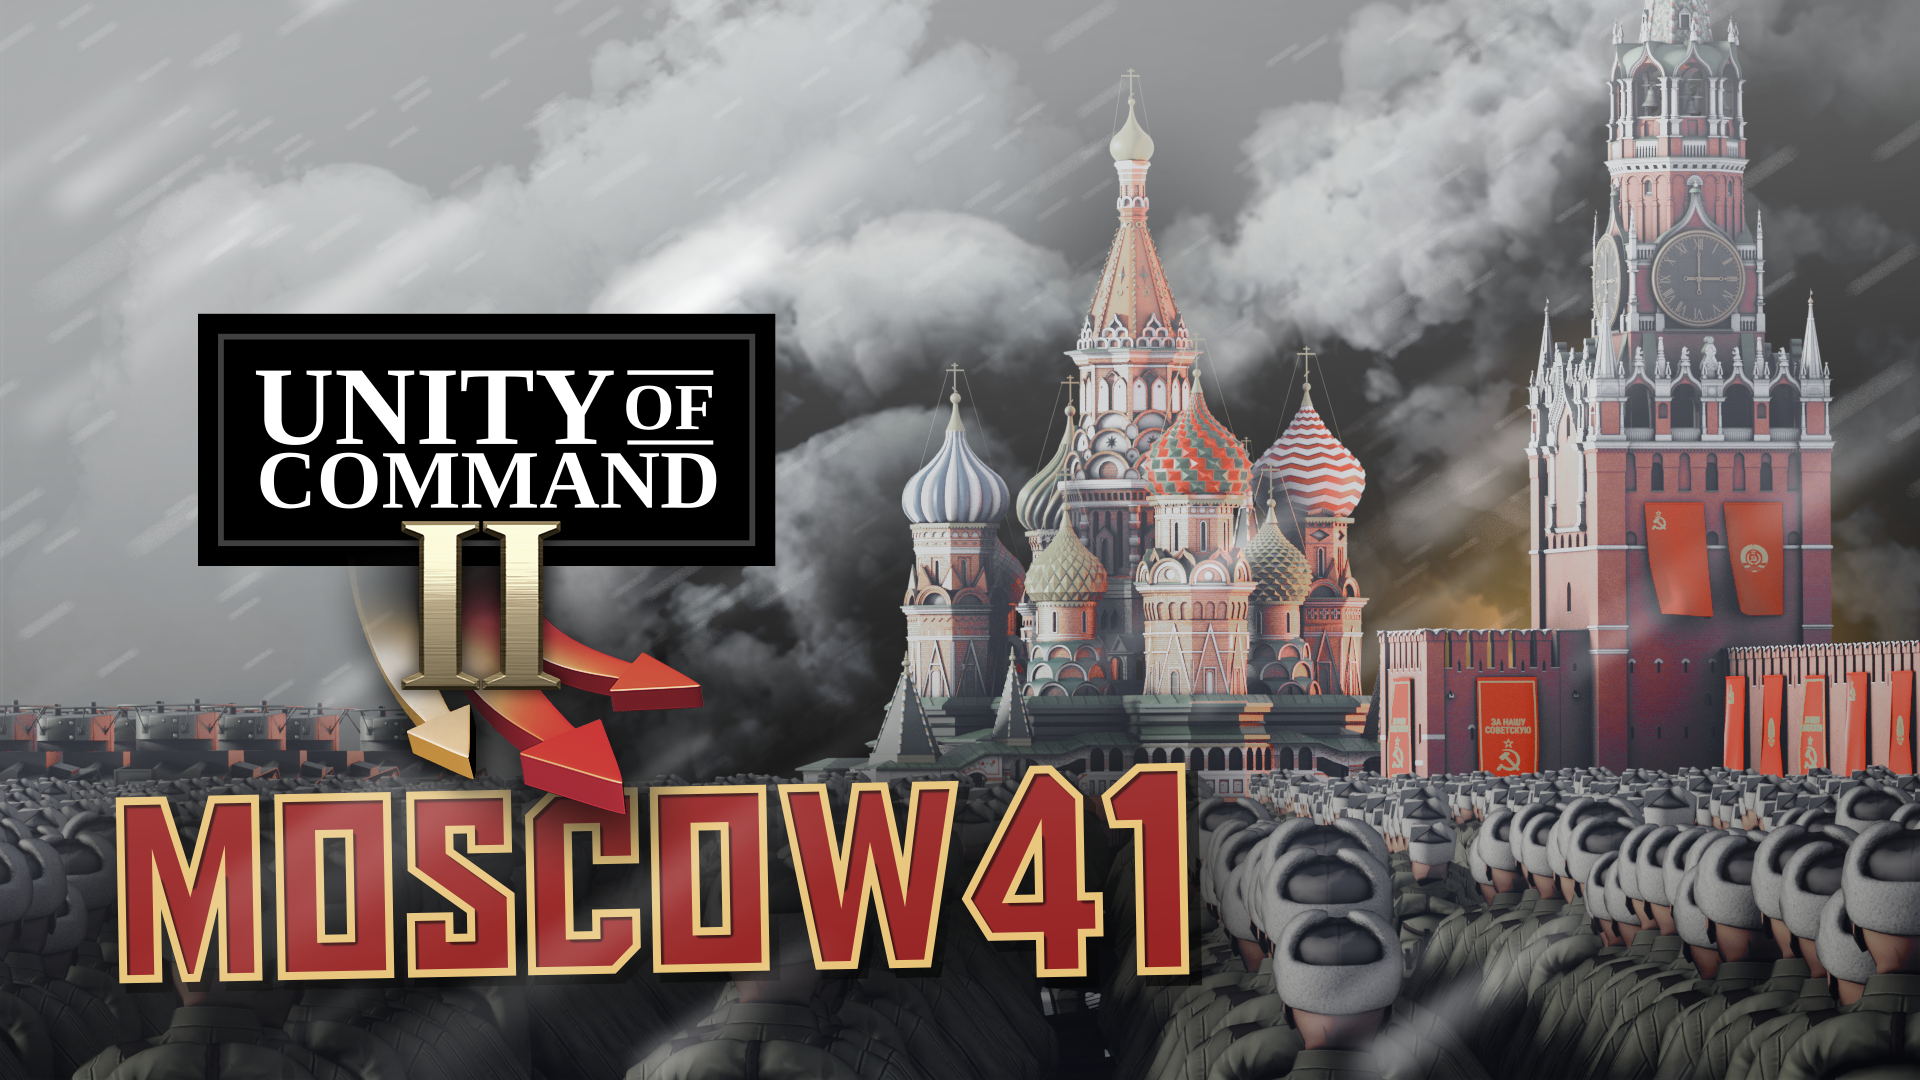 moscow capsule 1920x1080